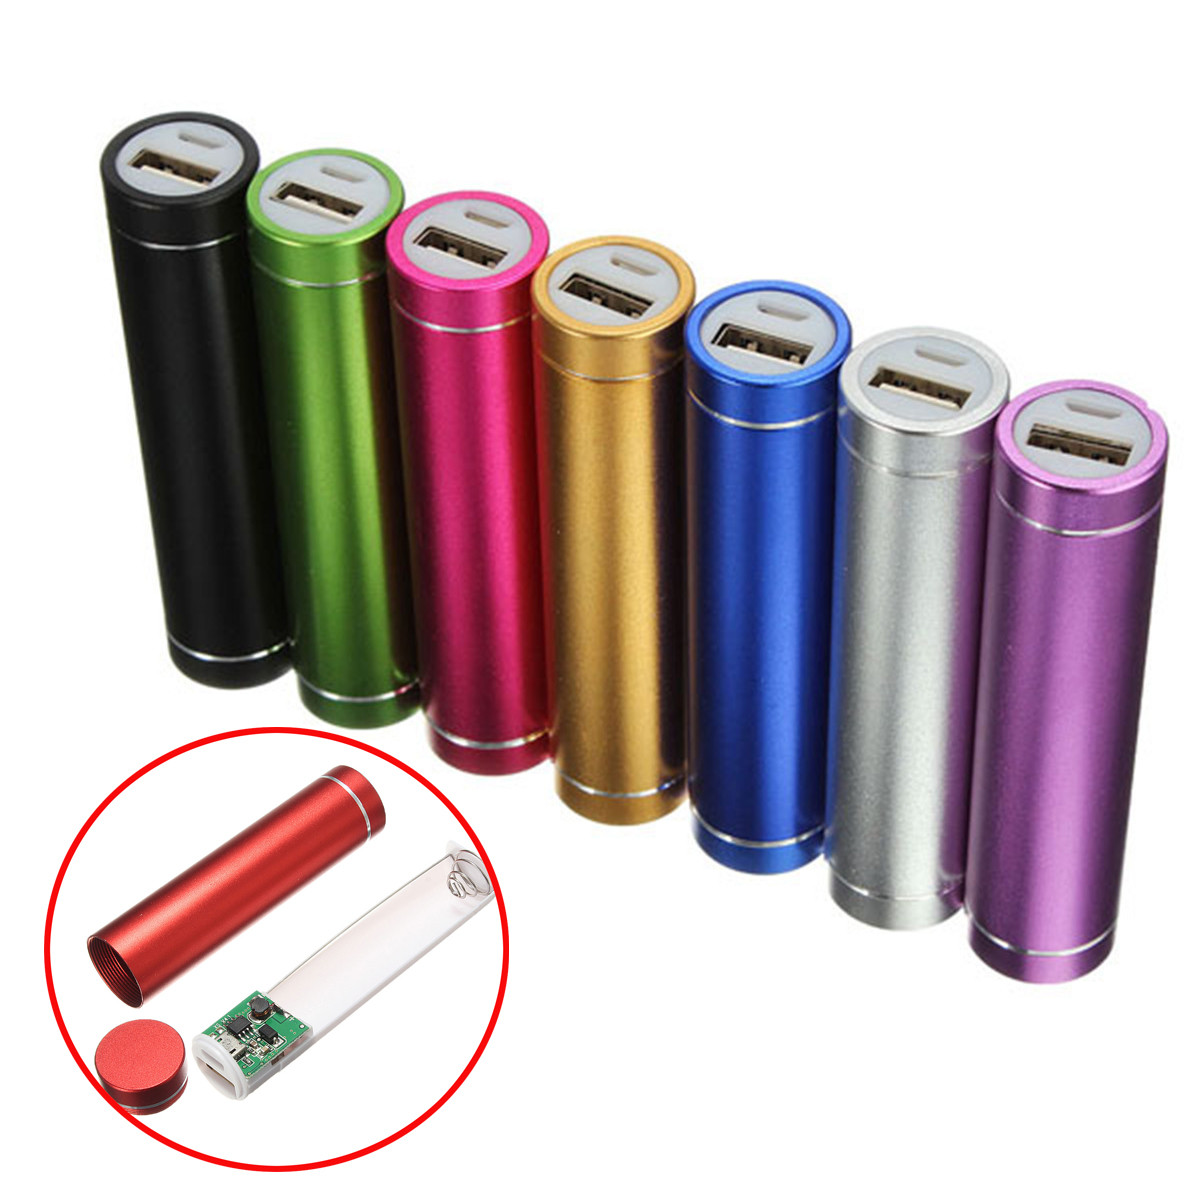 Portable USB Power Bank Case Kit 18650 Battery Charger DIY Box for iPhone 8 X Plus S8 S9 Note 8